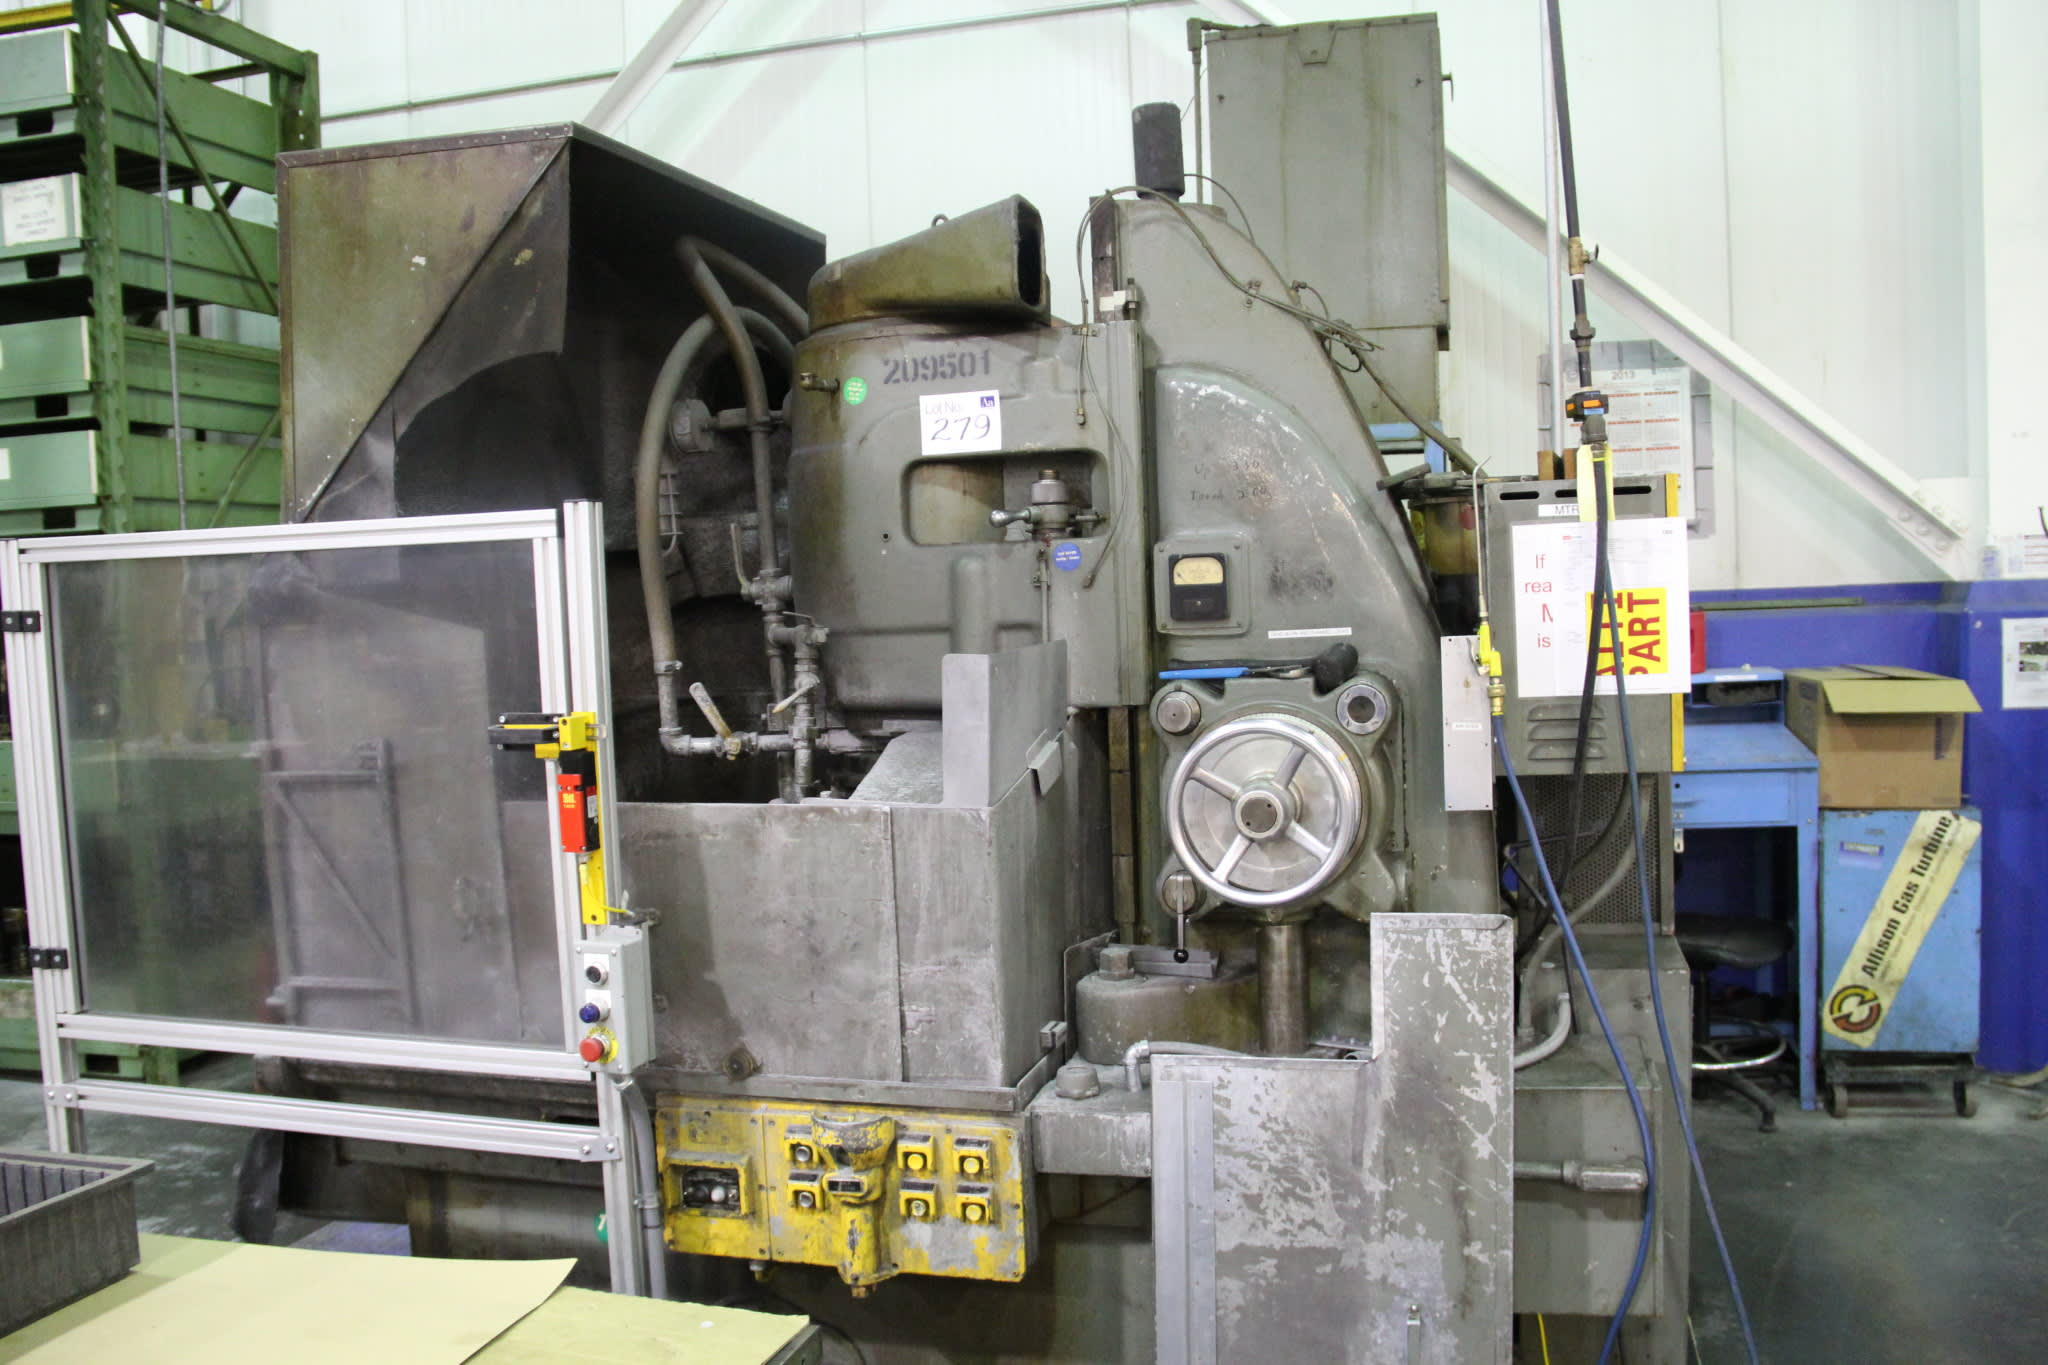 Rolls Royce Indianapolis Sale 13 Machinery and Equipment on